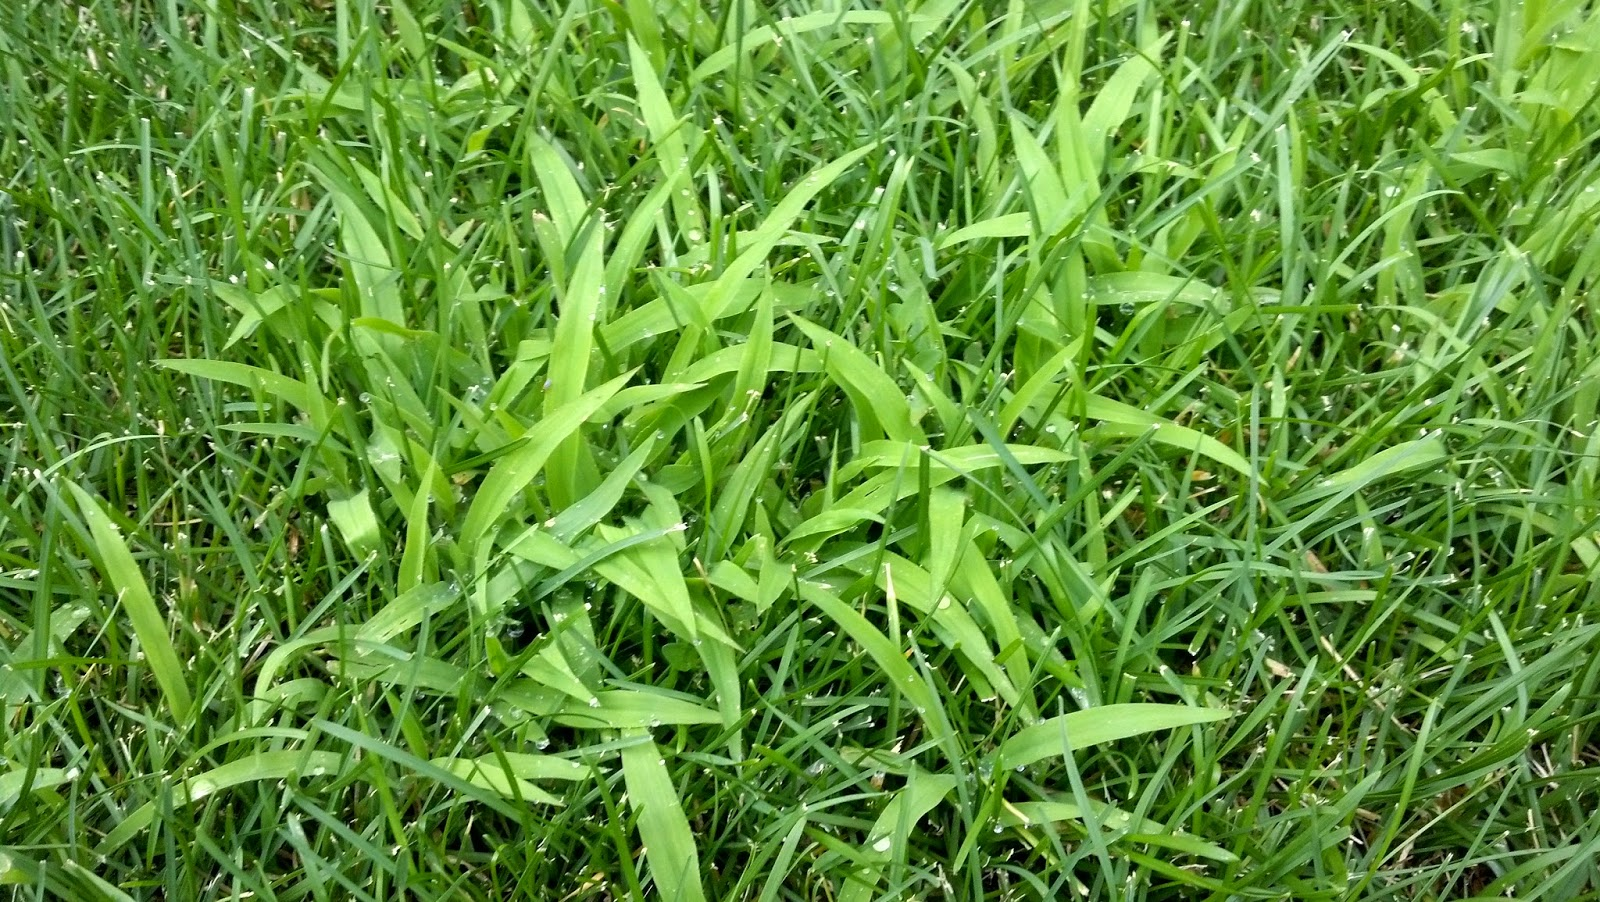 Because crabgrass is fast growing and spreads quickly,  it can have a dominant presence in your lawn by May without a spring pre-emergent.